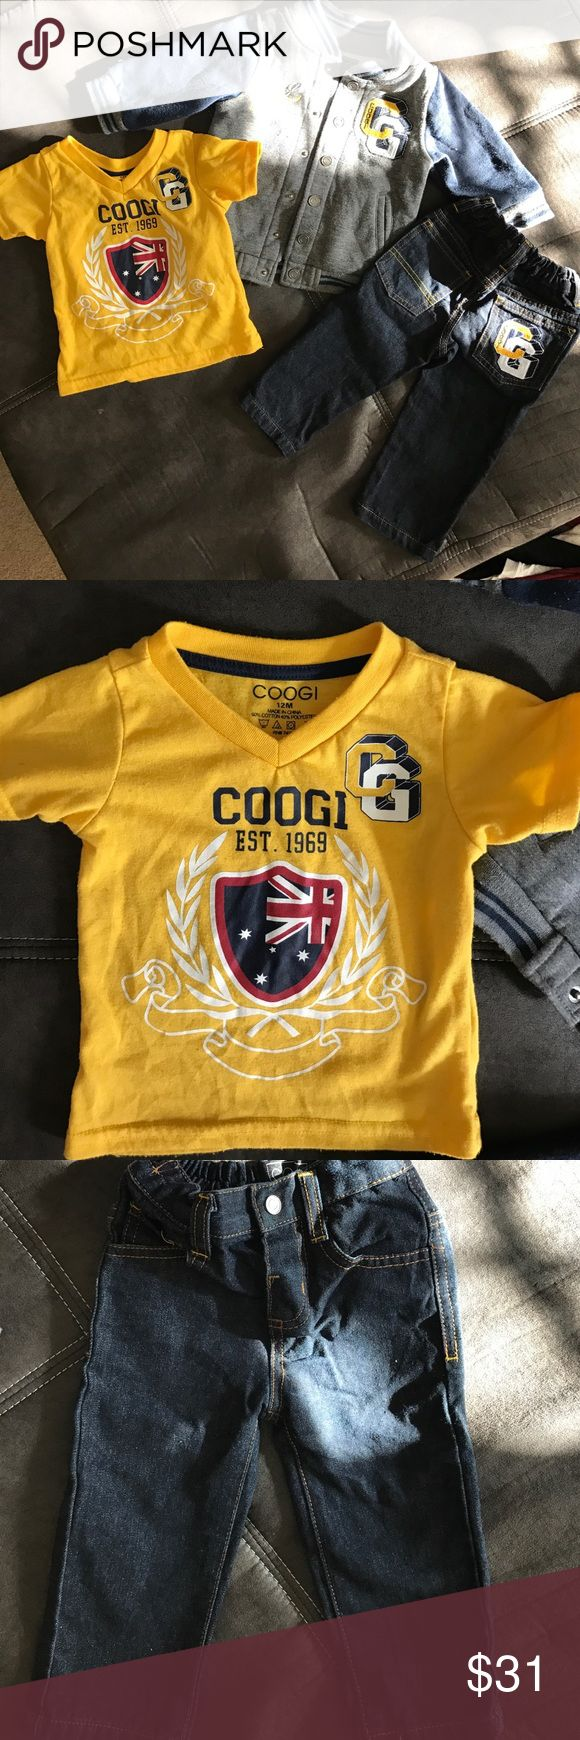 3 piece Coogi outfit Letterman jacket v-neck shirt with jeans size 12M COOGI Matching Sets